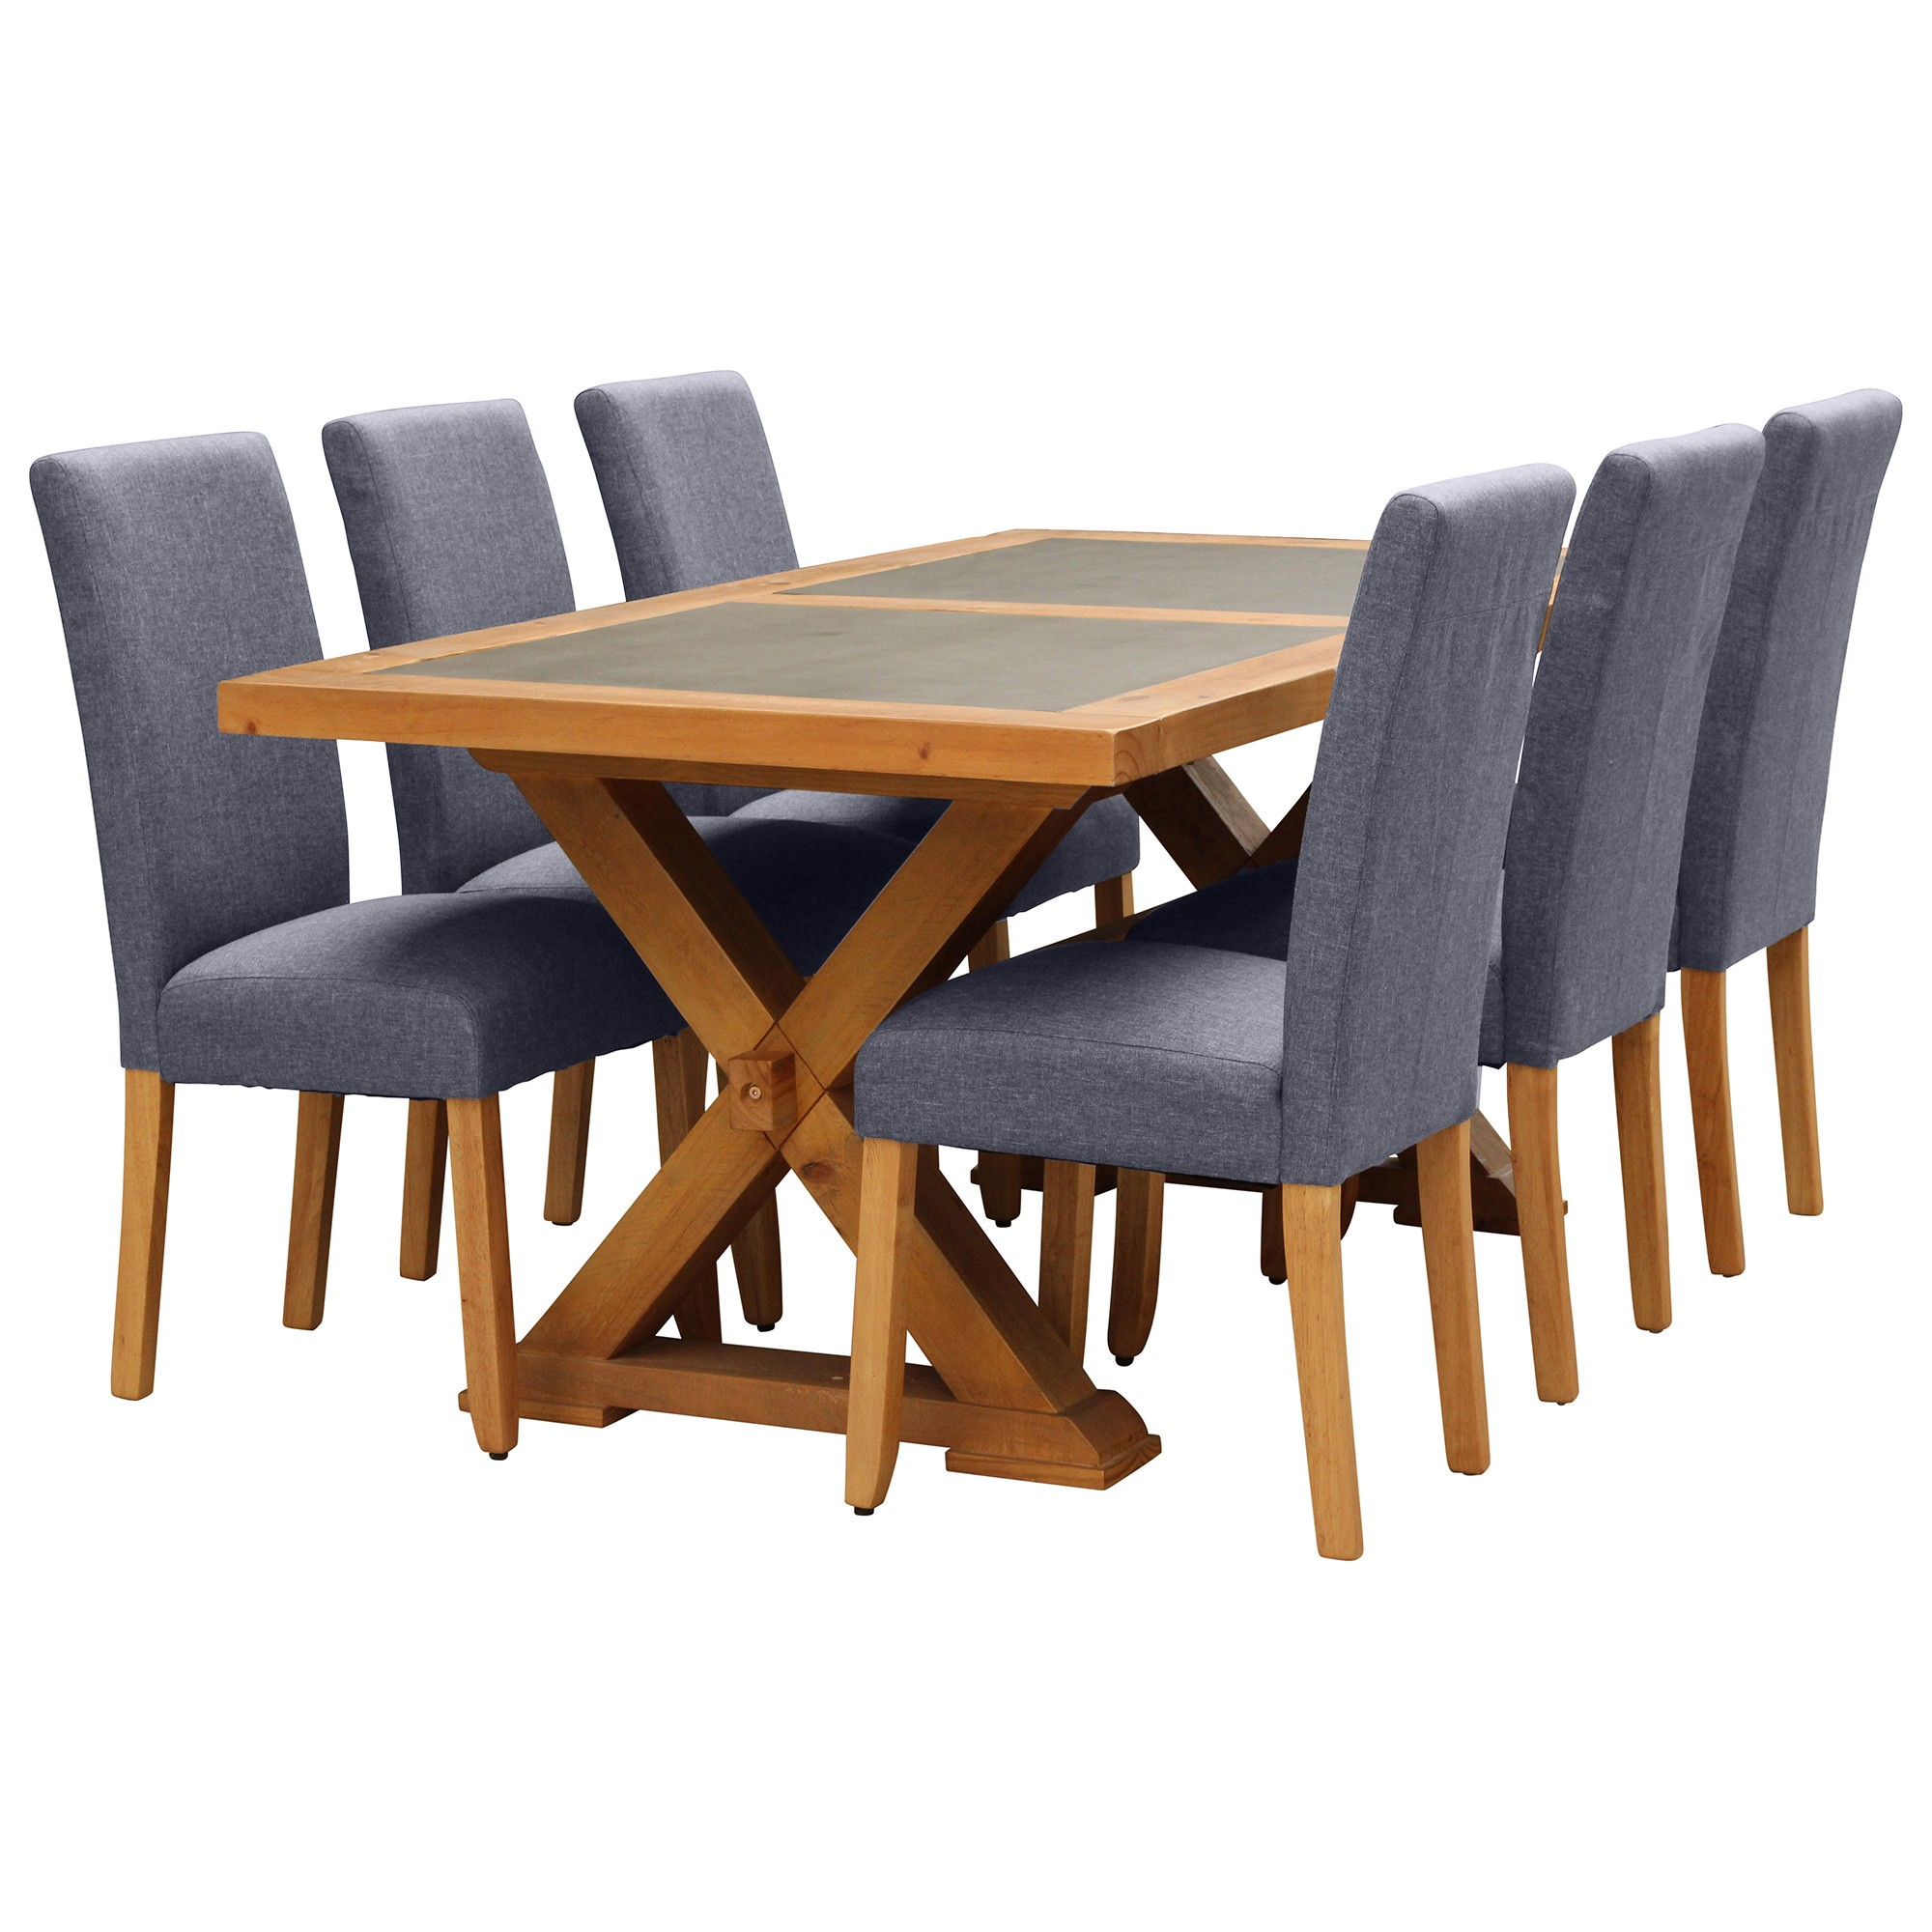 Sefton 9 Piece Pine Timber Dining Table Set, 210cm, Light Grey Arwen Chair